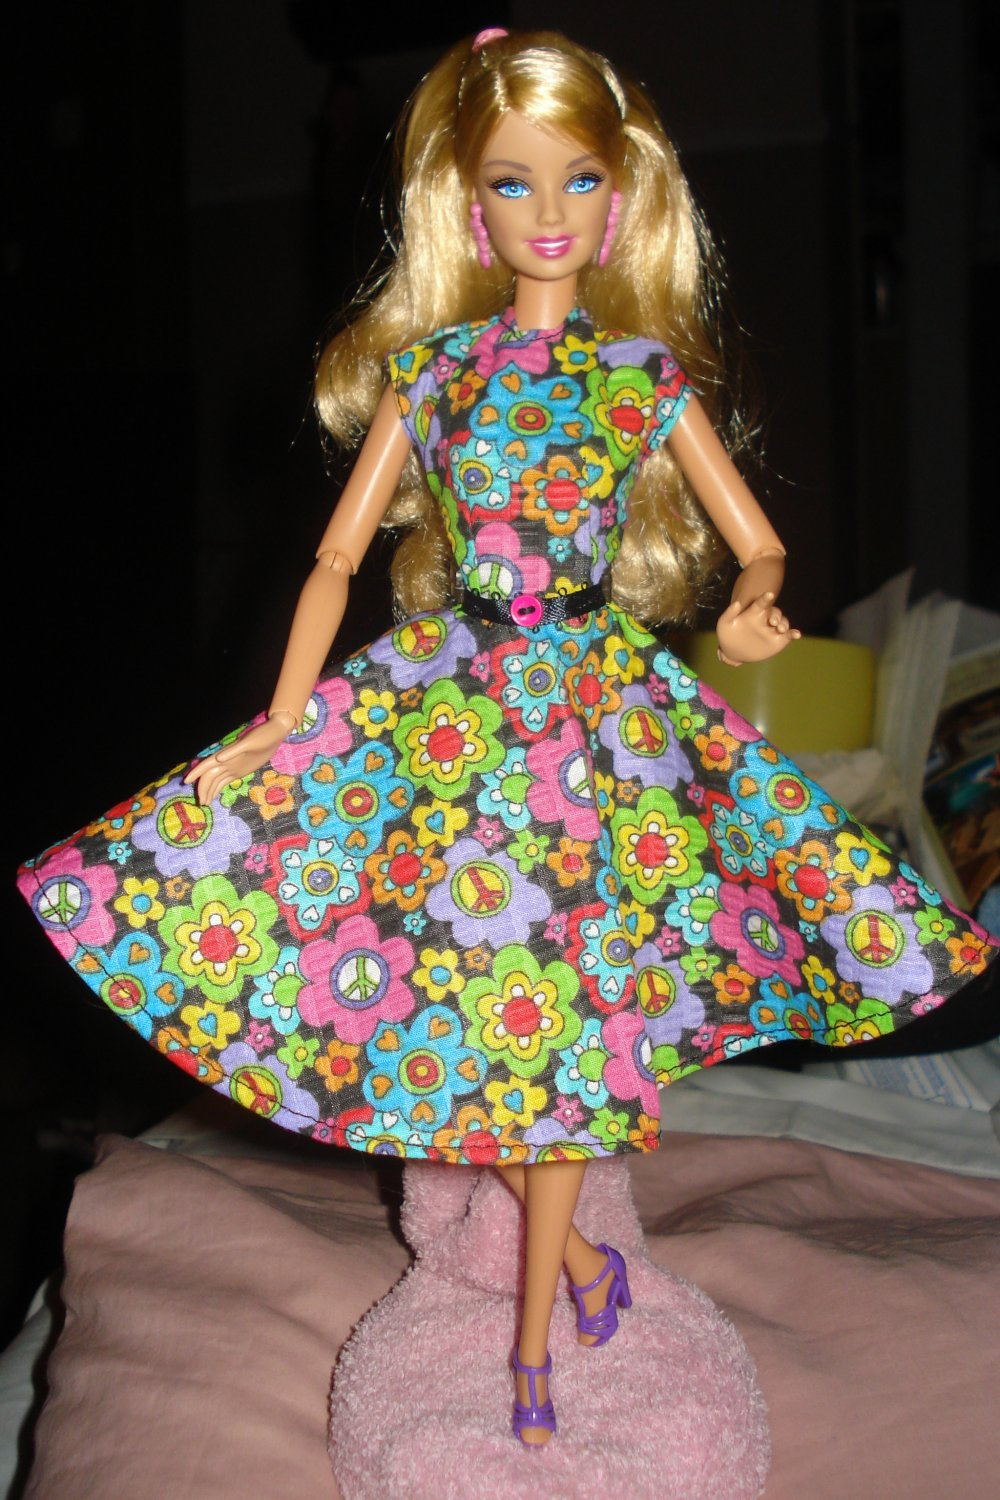 Circular skirt dress in multi-colored floral for Barbie Dolls - ed10